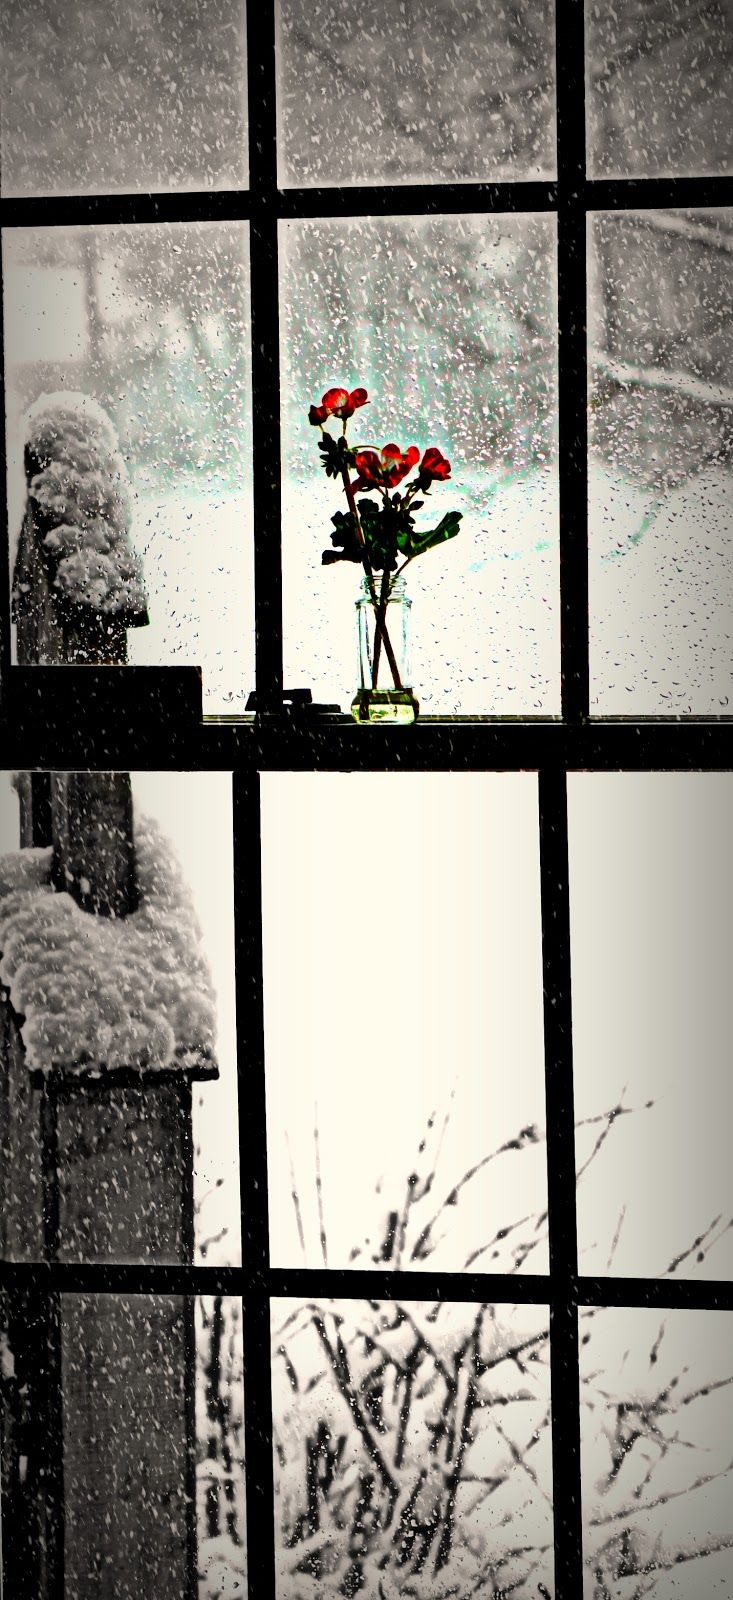 Snowing outside